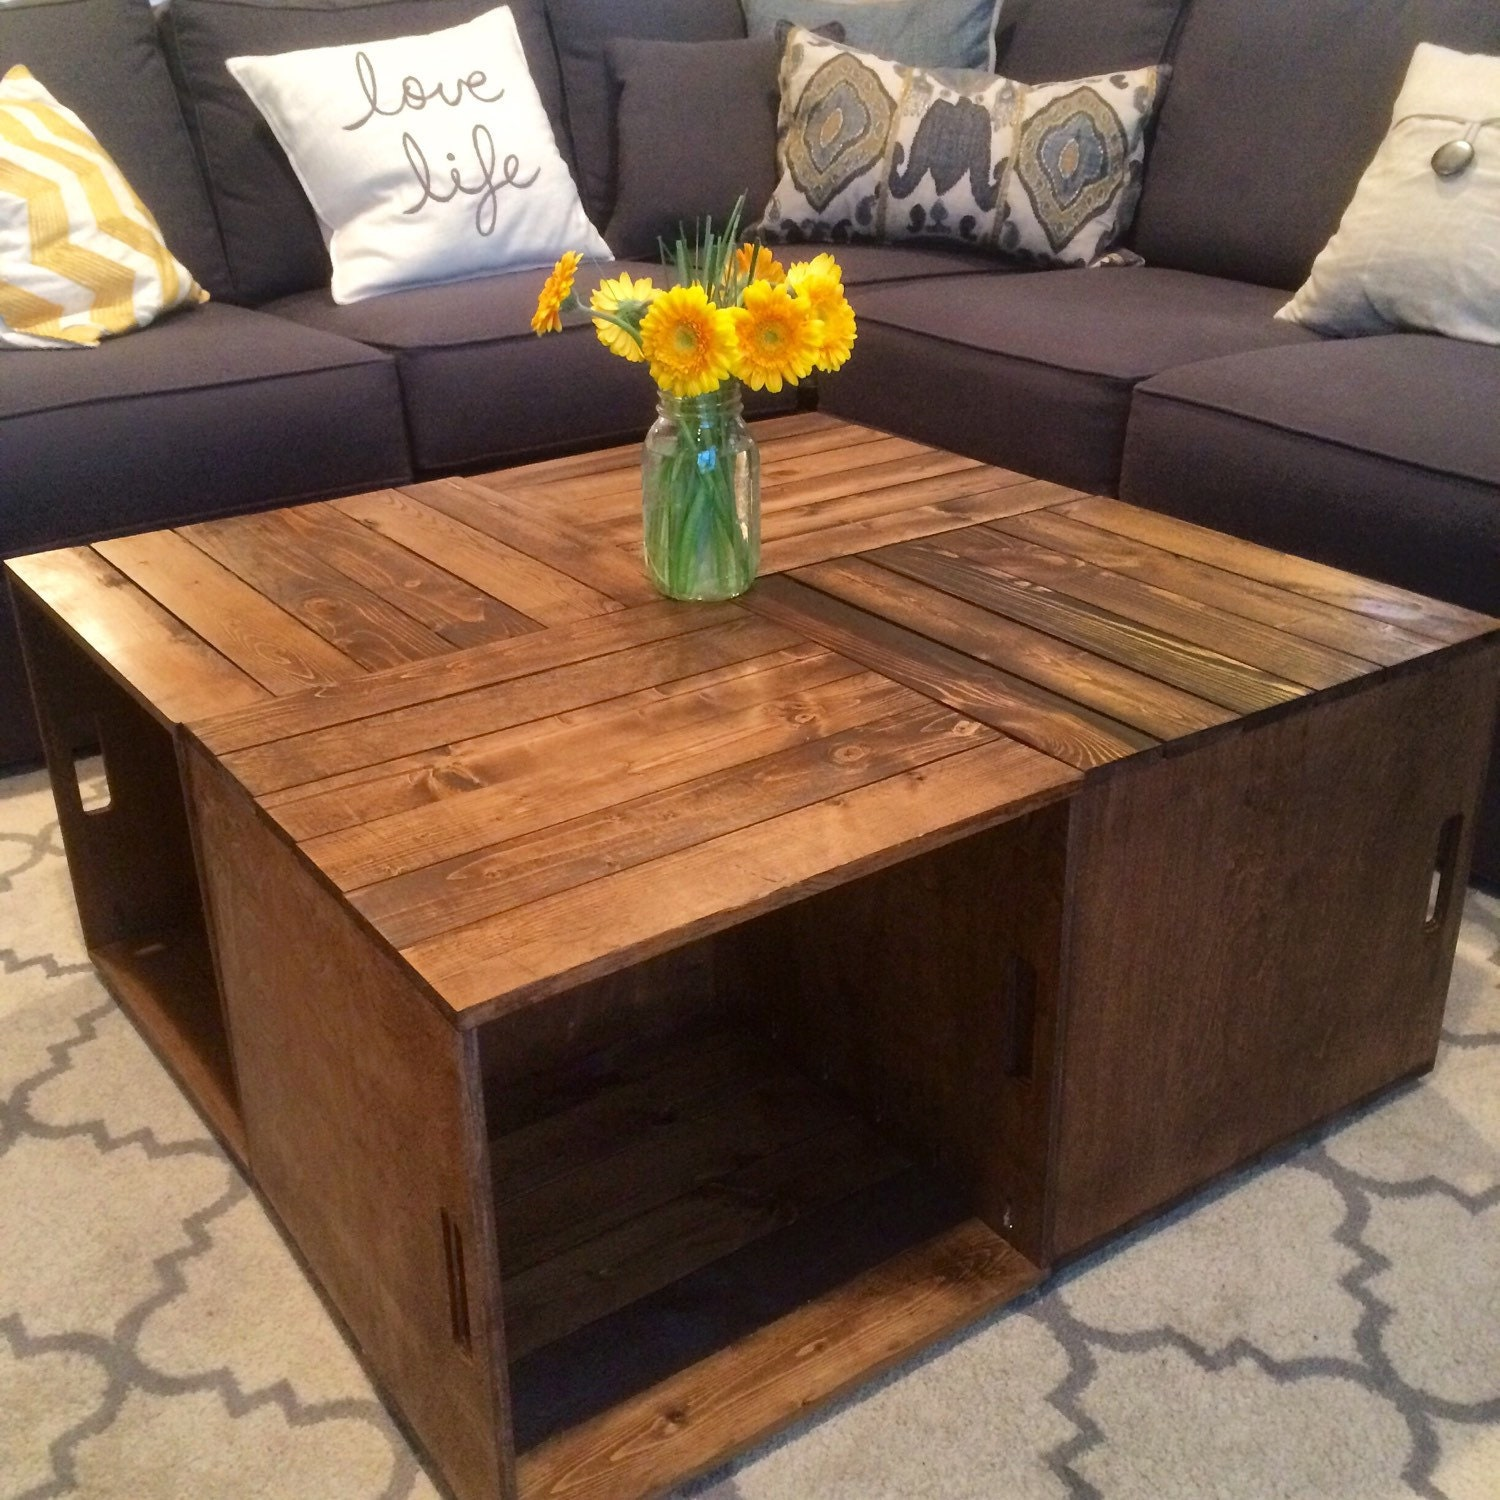 Make a Mobile Outdoor Coffee Table From Wooden Crates | HGTV |Wooden Crate Coffee Table